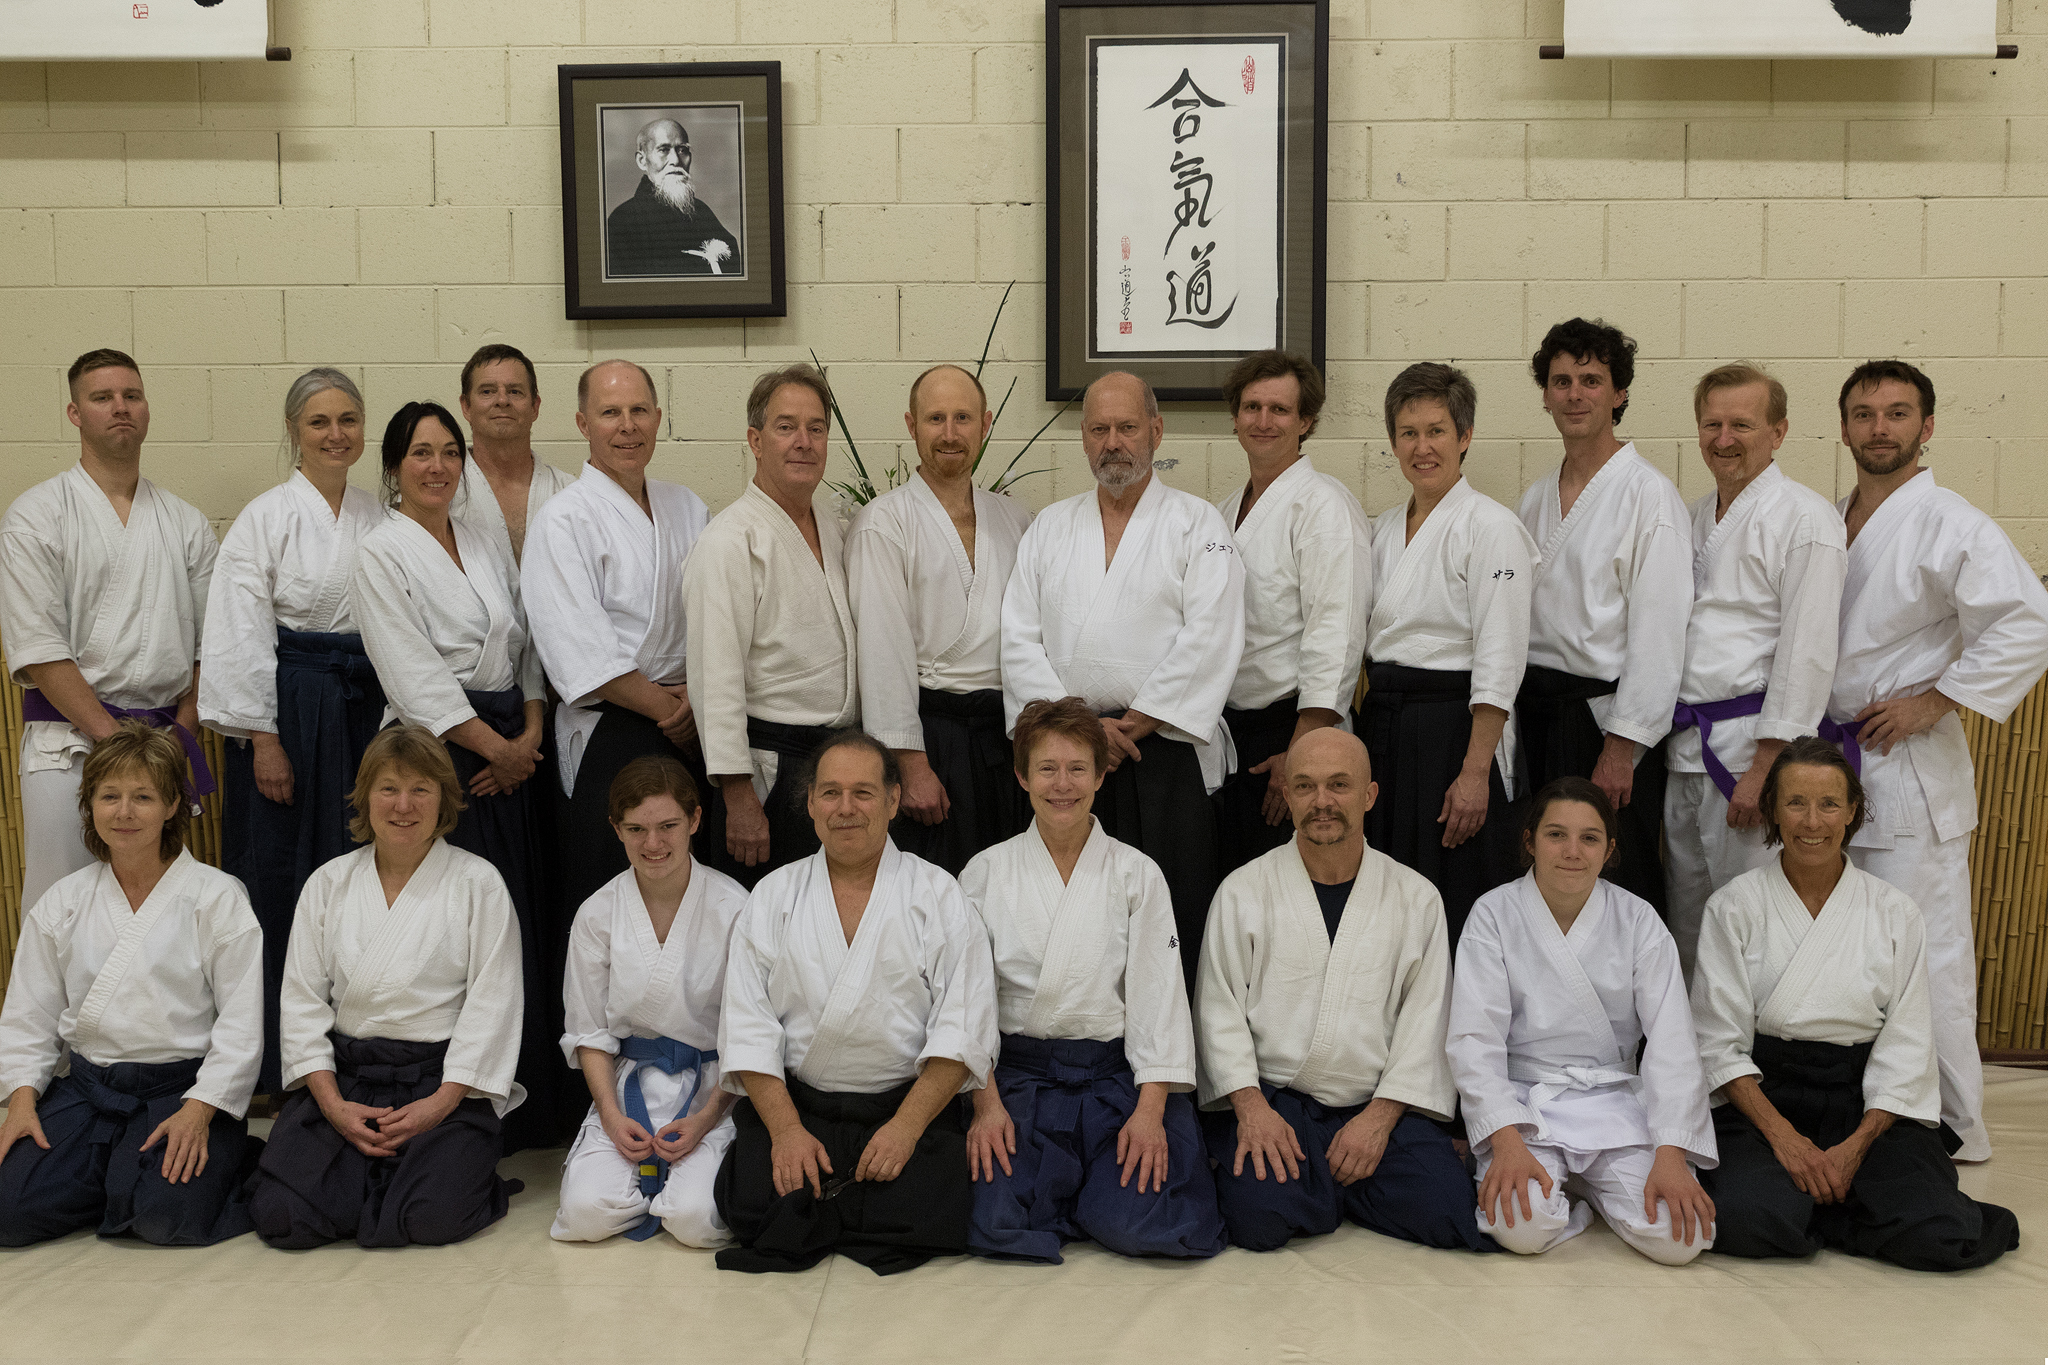 Group photo from Kimberly Richardson Sensei's seminar at Aikido'Ka